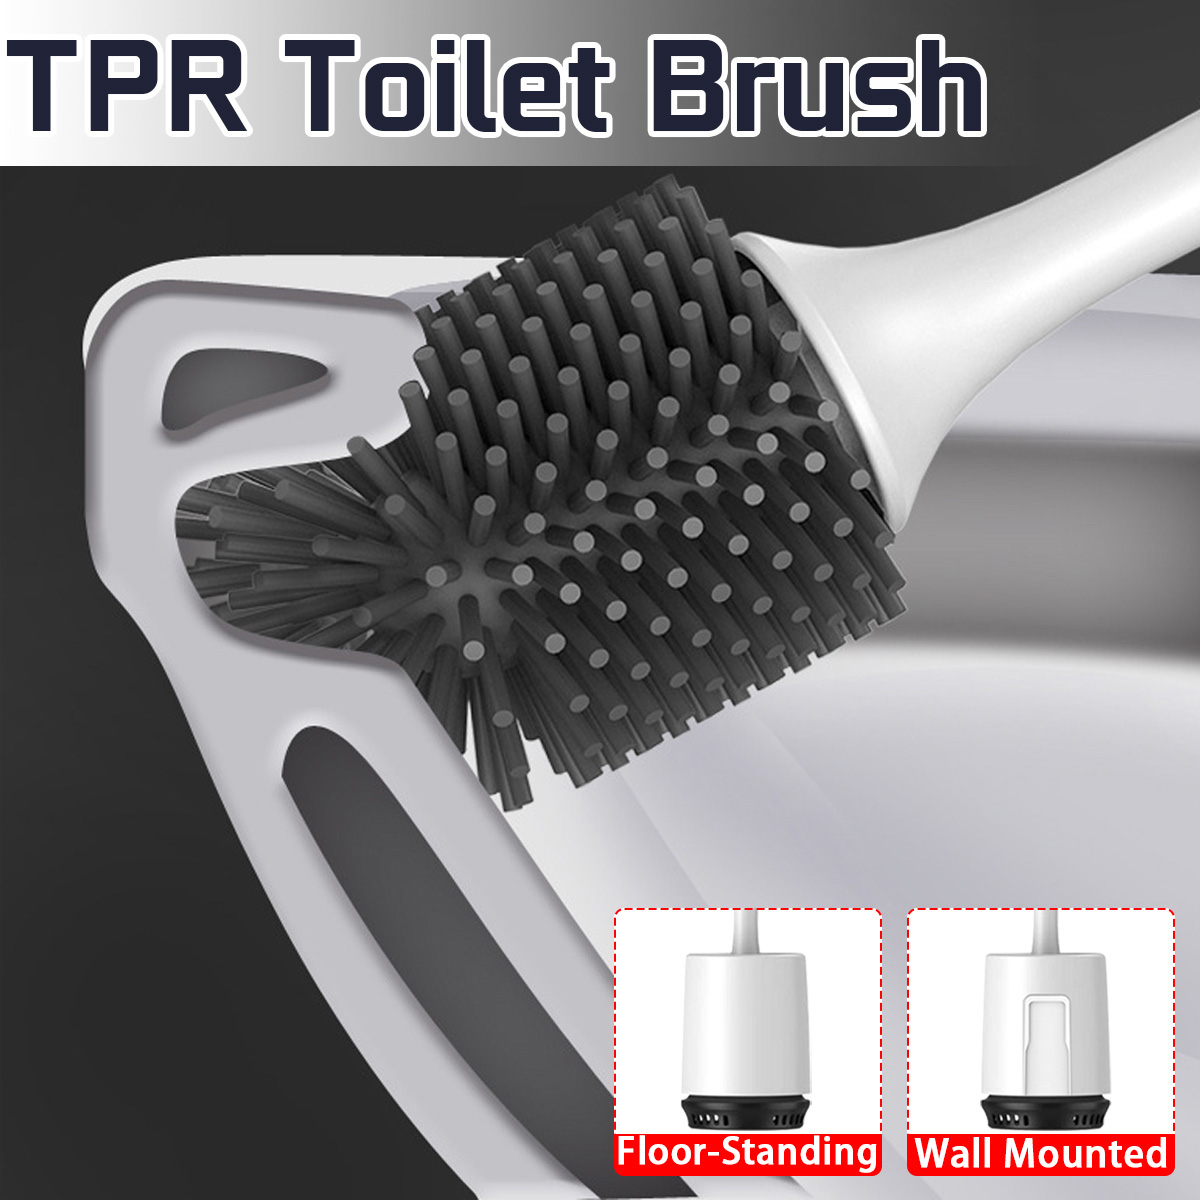 Rubber Head Holder No Dead Corner Cleaning Brush Longer Handle Toilet Brush With Hollow And Easy To Install Base Cleaning Tool